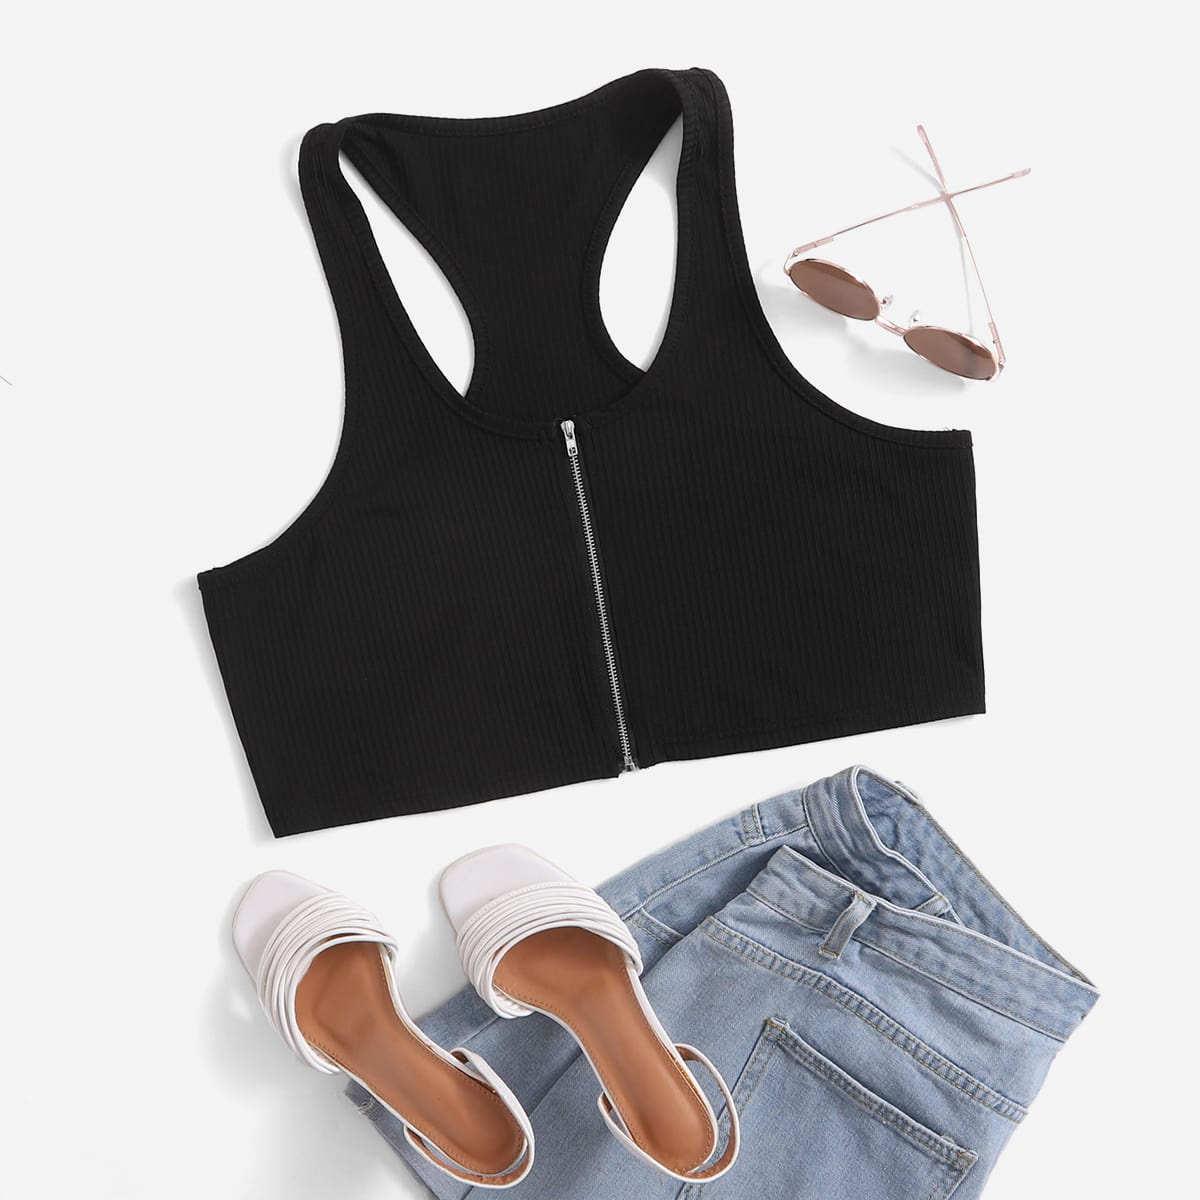 Plus Zip Up Racer Back Tank Top, SHEIN  - buy with discount